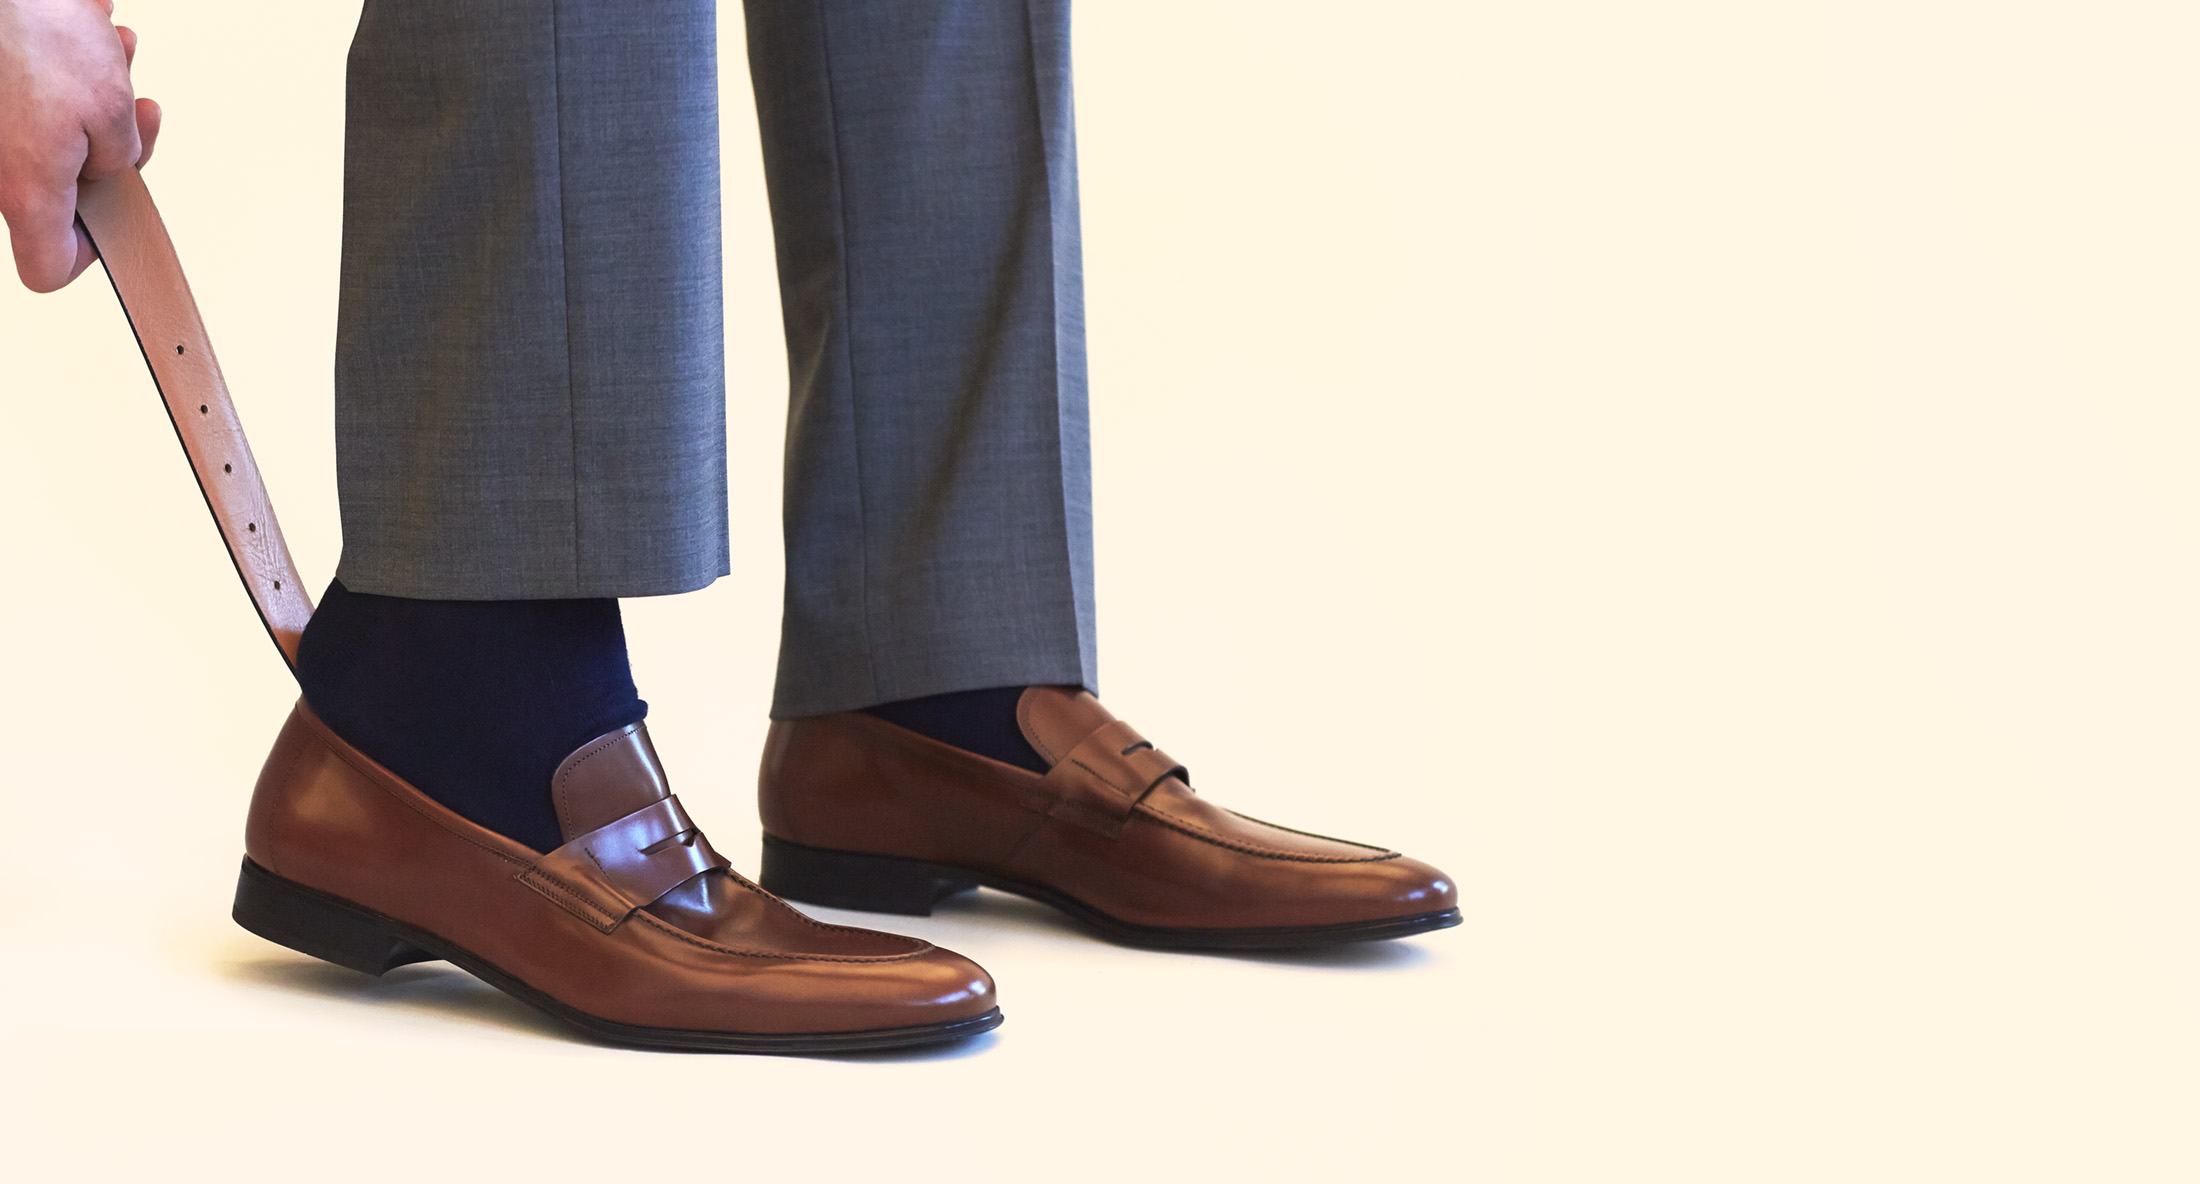 How To Protect Dress Shoes When Traveling